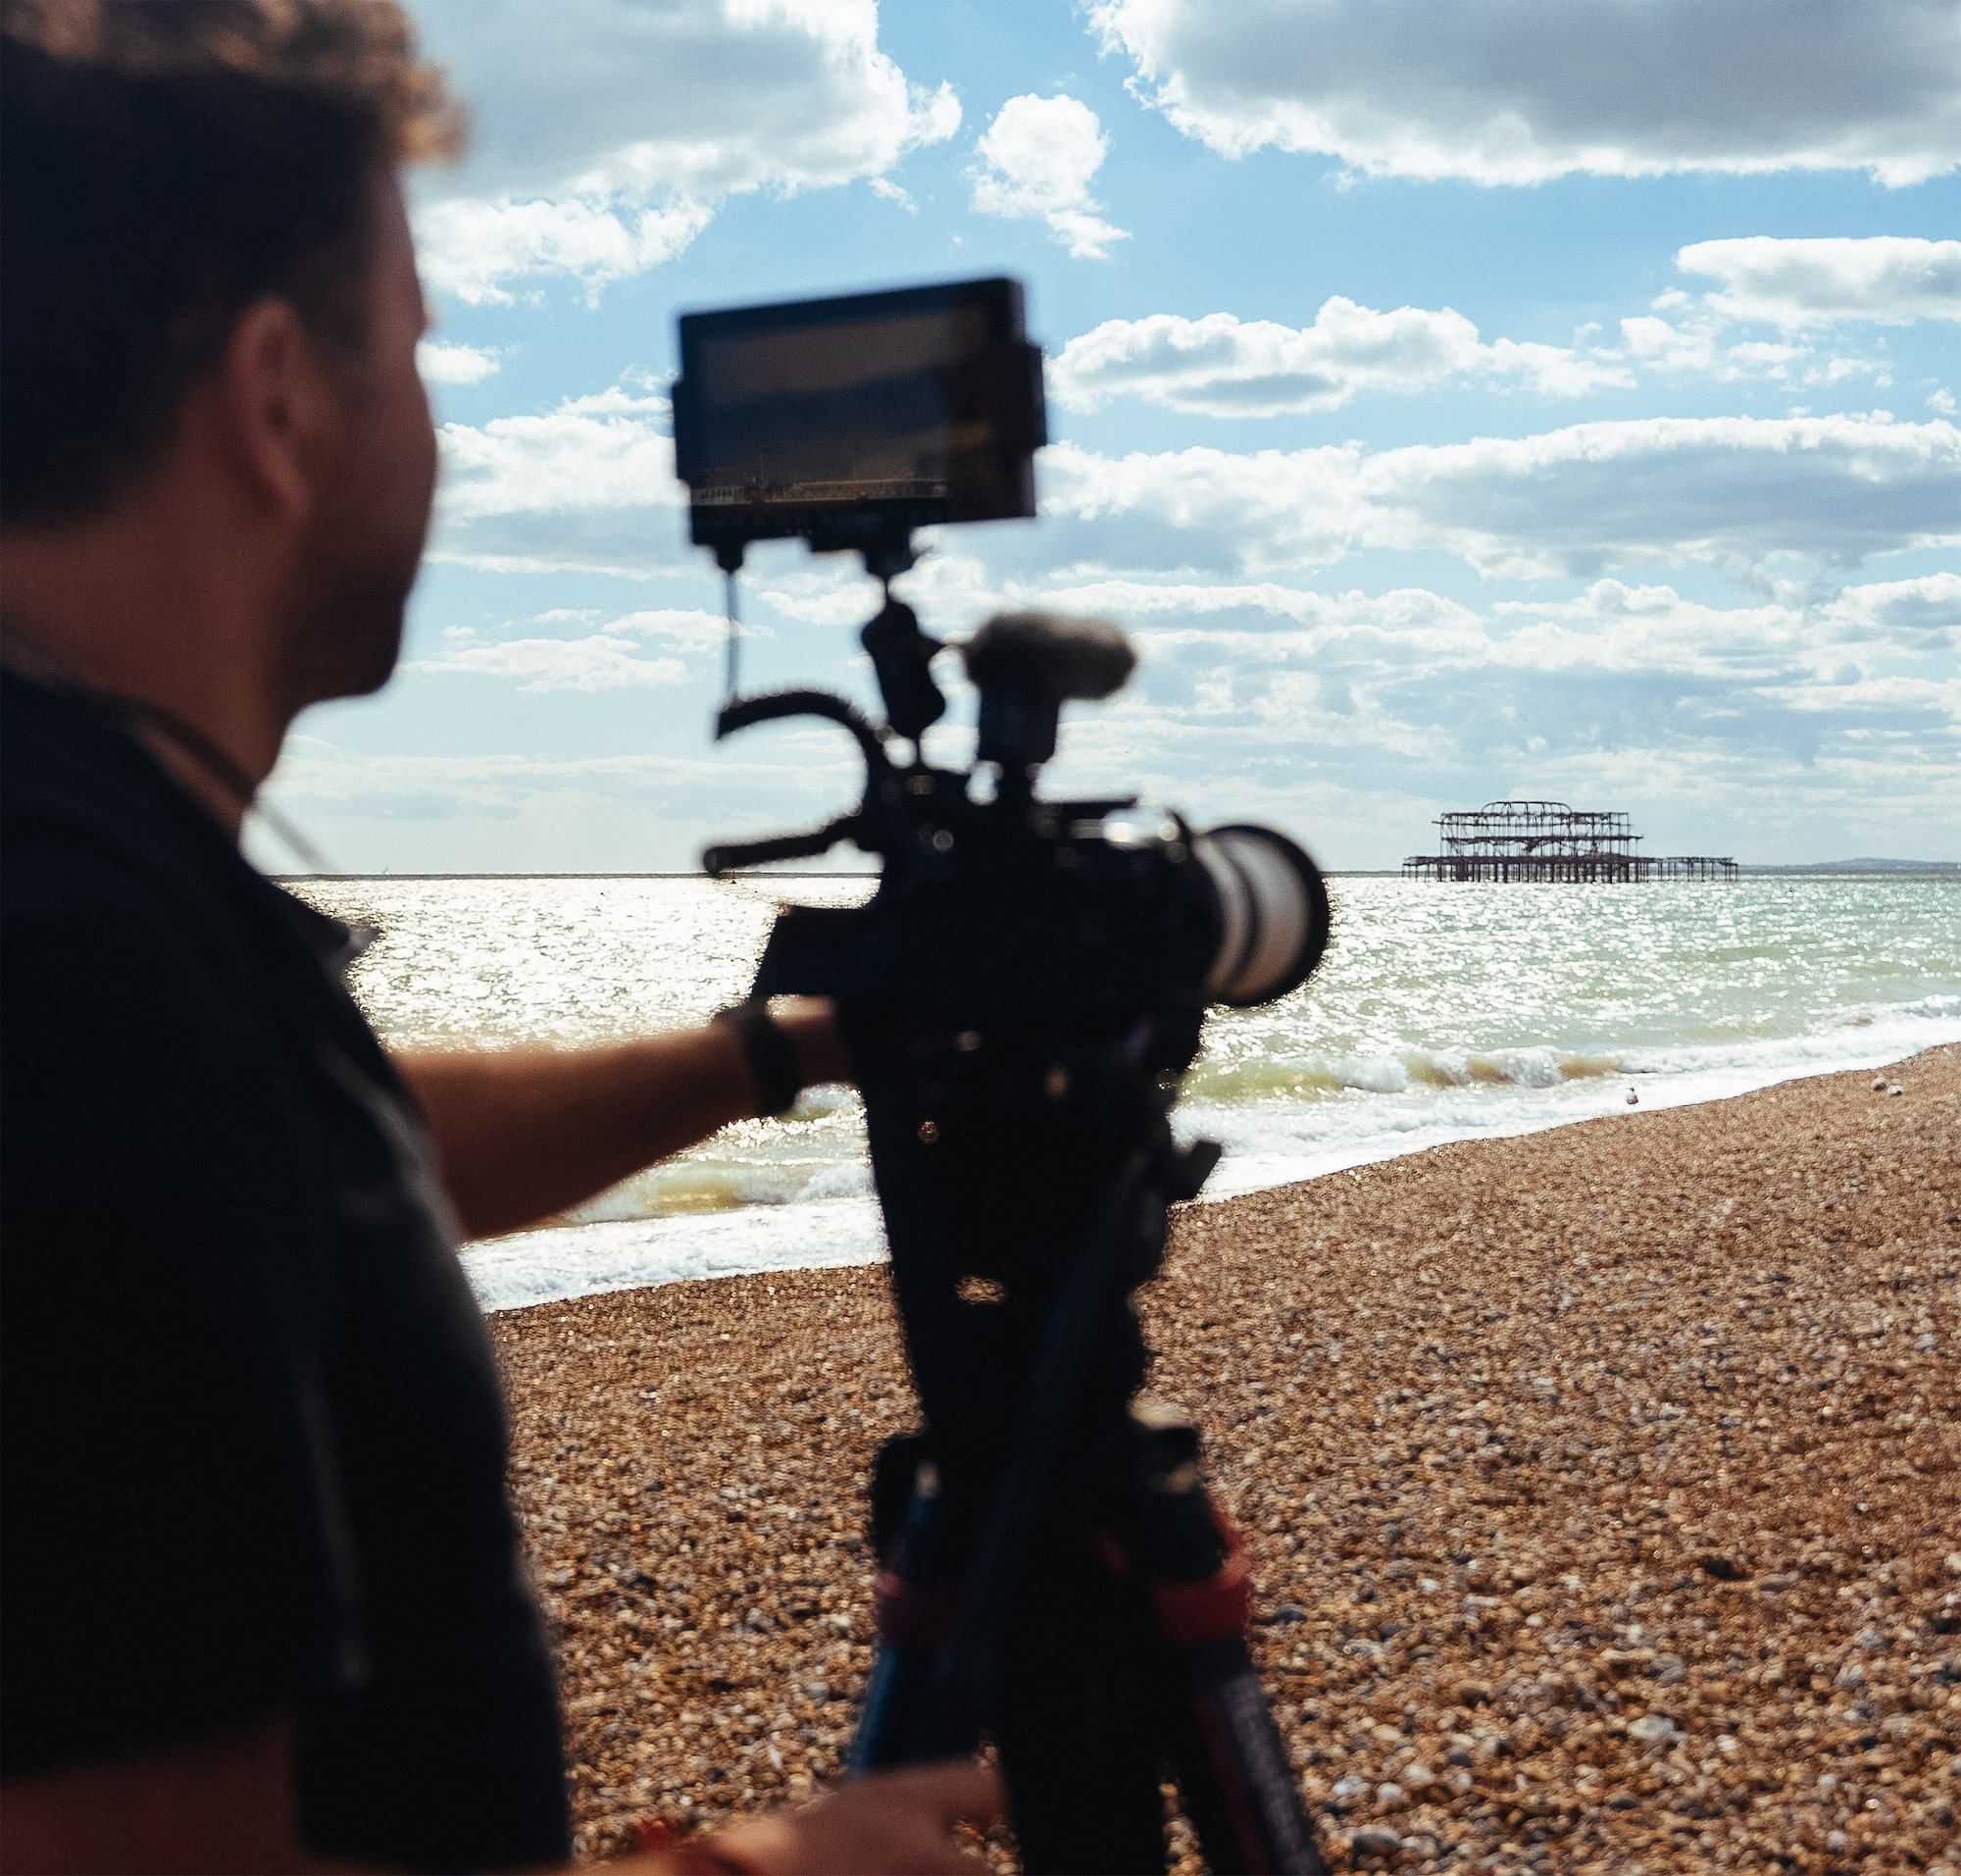 philip bloom filming on the beach with a run down pier in the distance